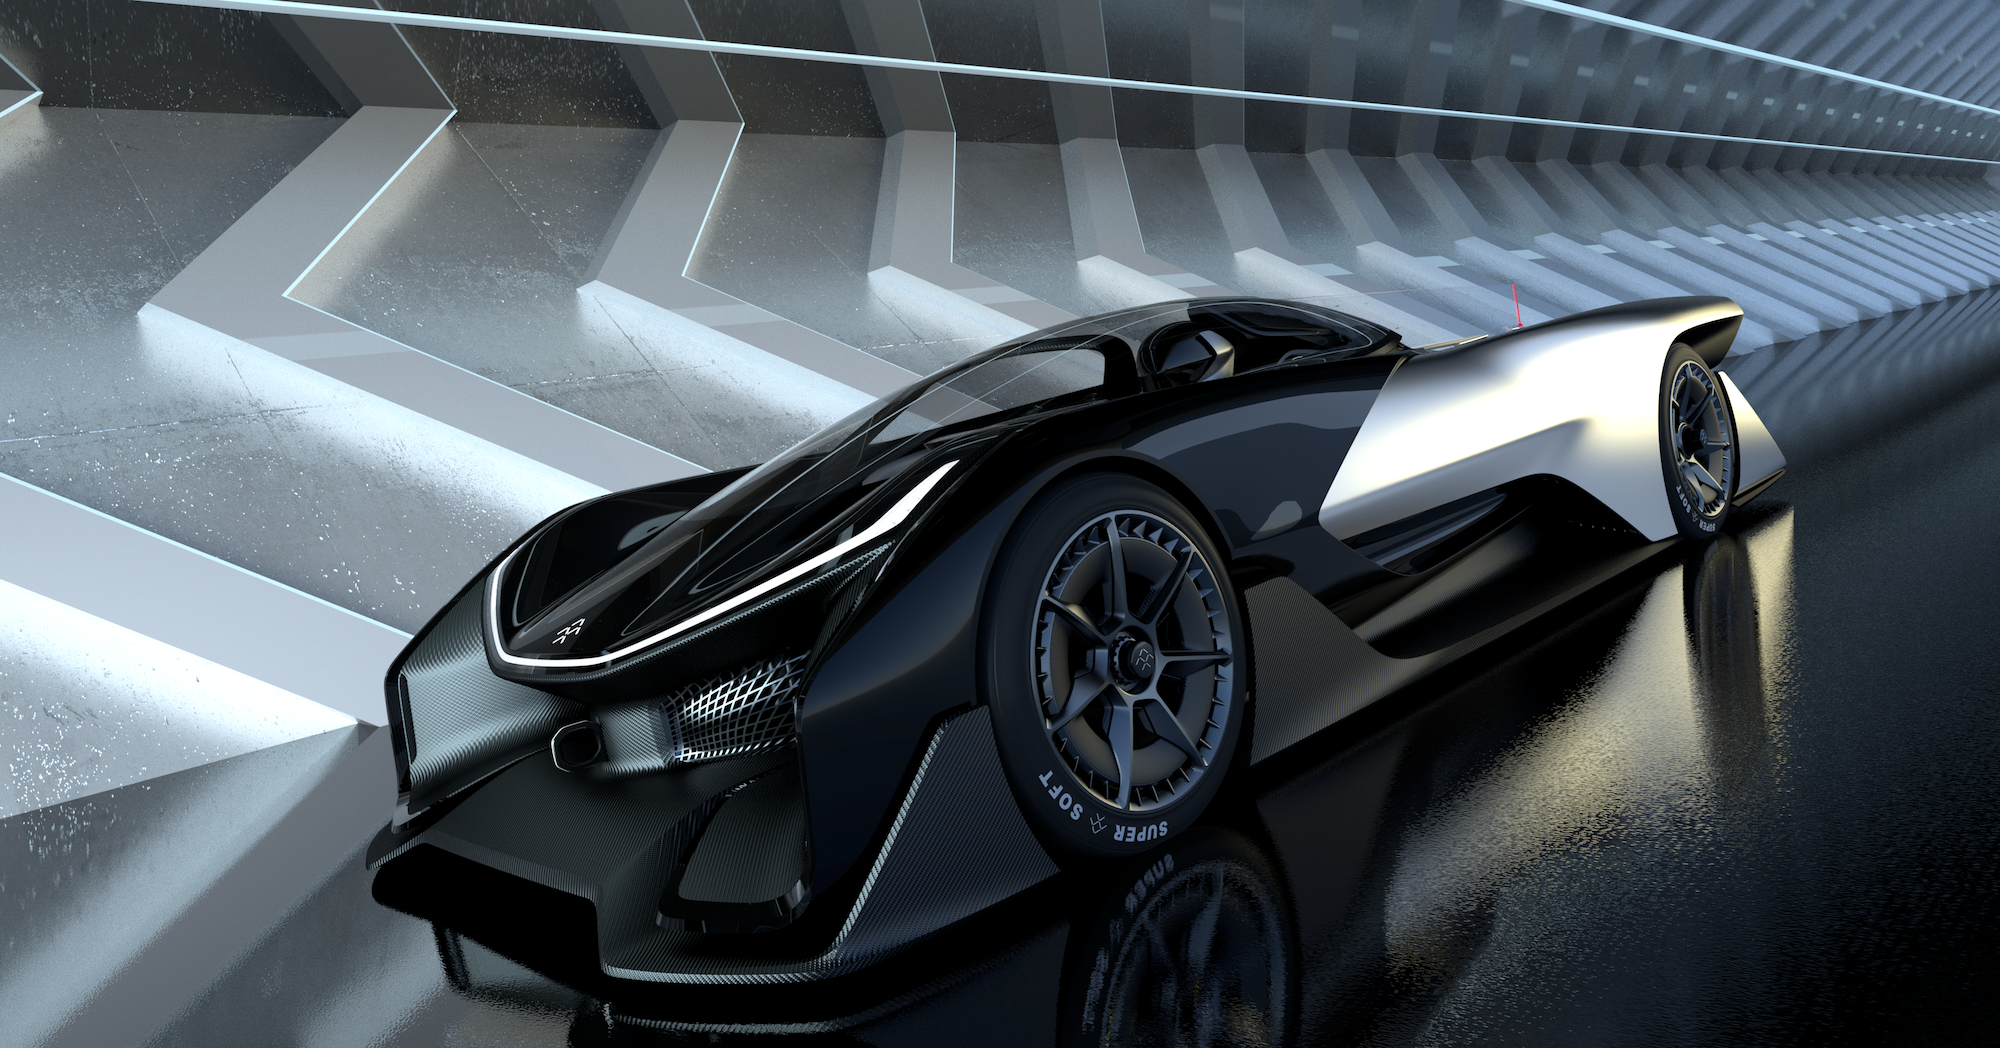 Faraday Future The California Based Electric Car Company That S Been Operating In Stealth Mode For Past Year And A Half Made Its First Splash On